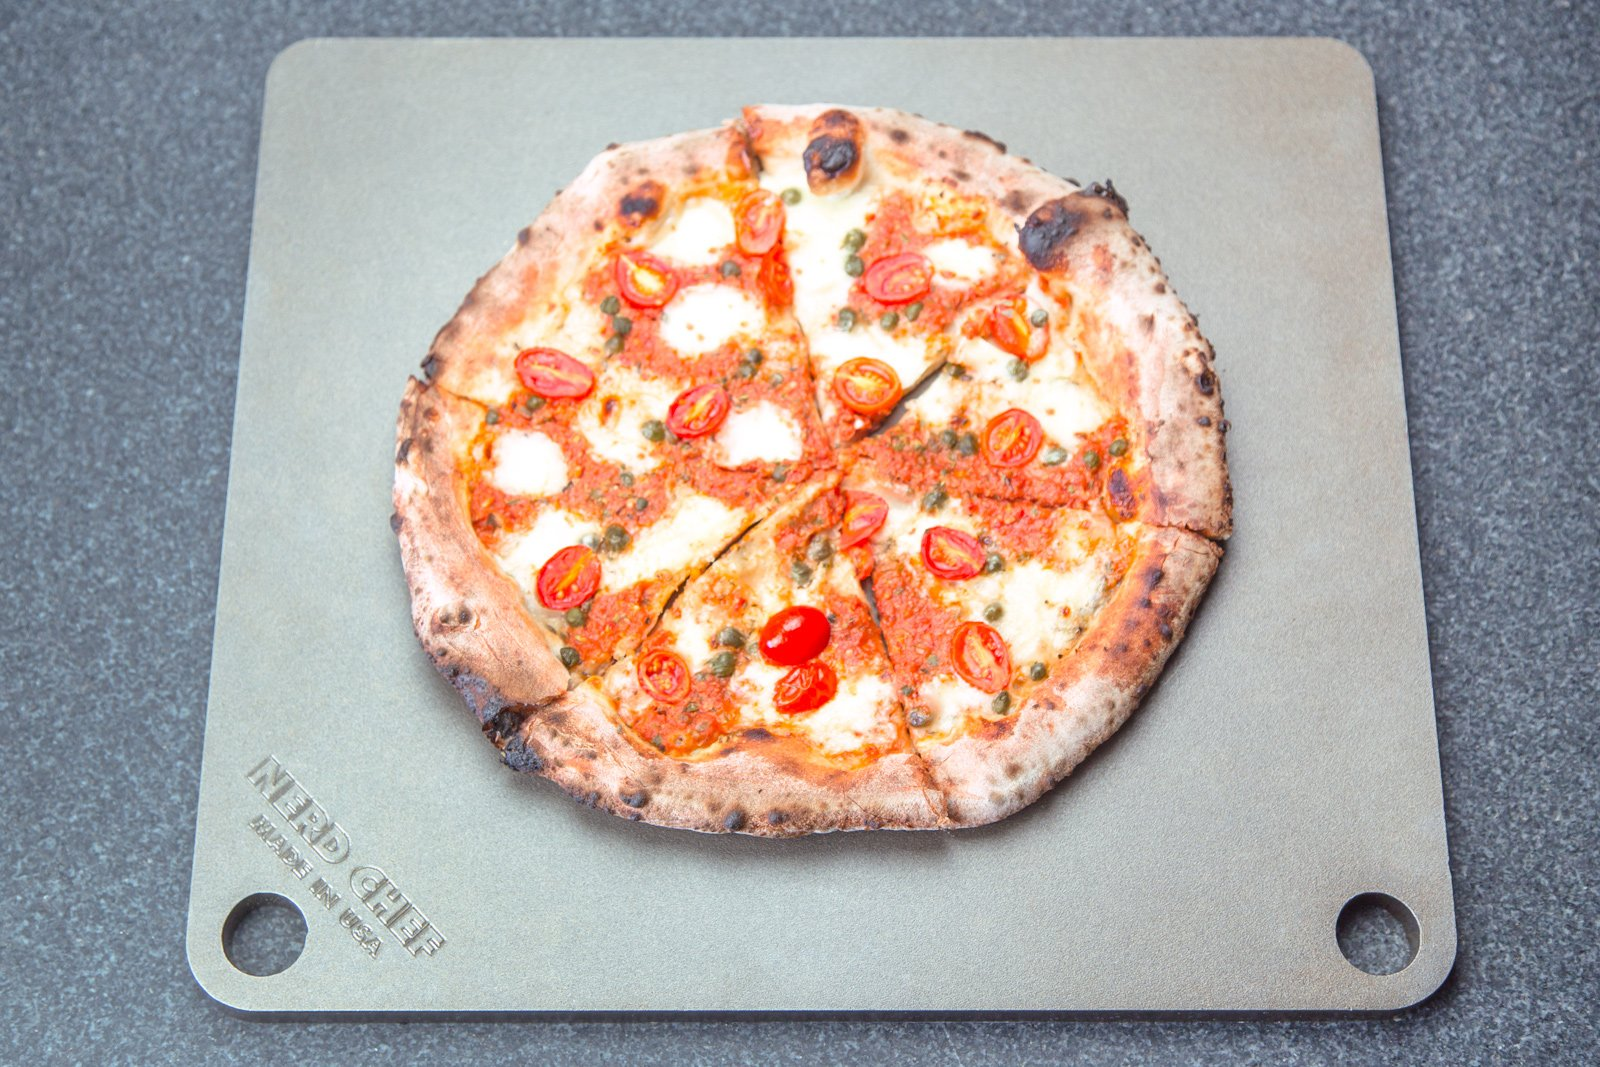 NerdChef Steel Stone - High-Performance Baking Surface for Pizza .50'' Thick - Ultimate by NerdChef (Image #9)